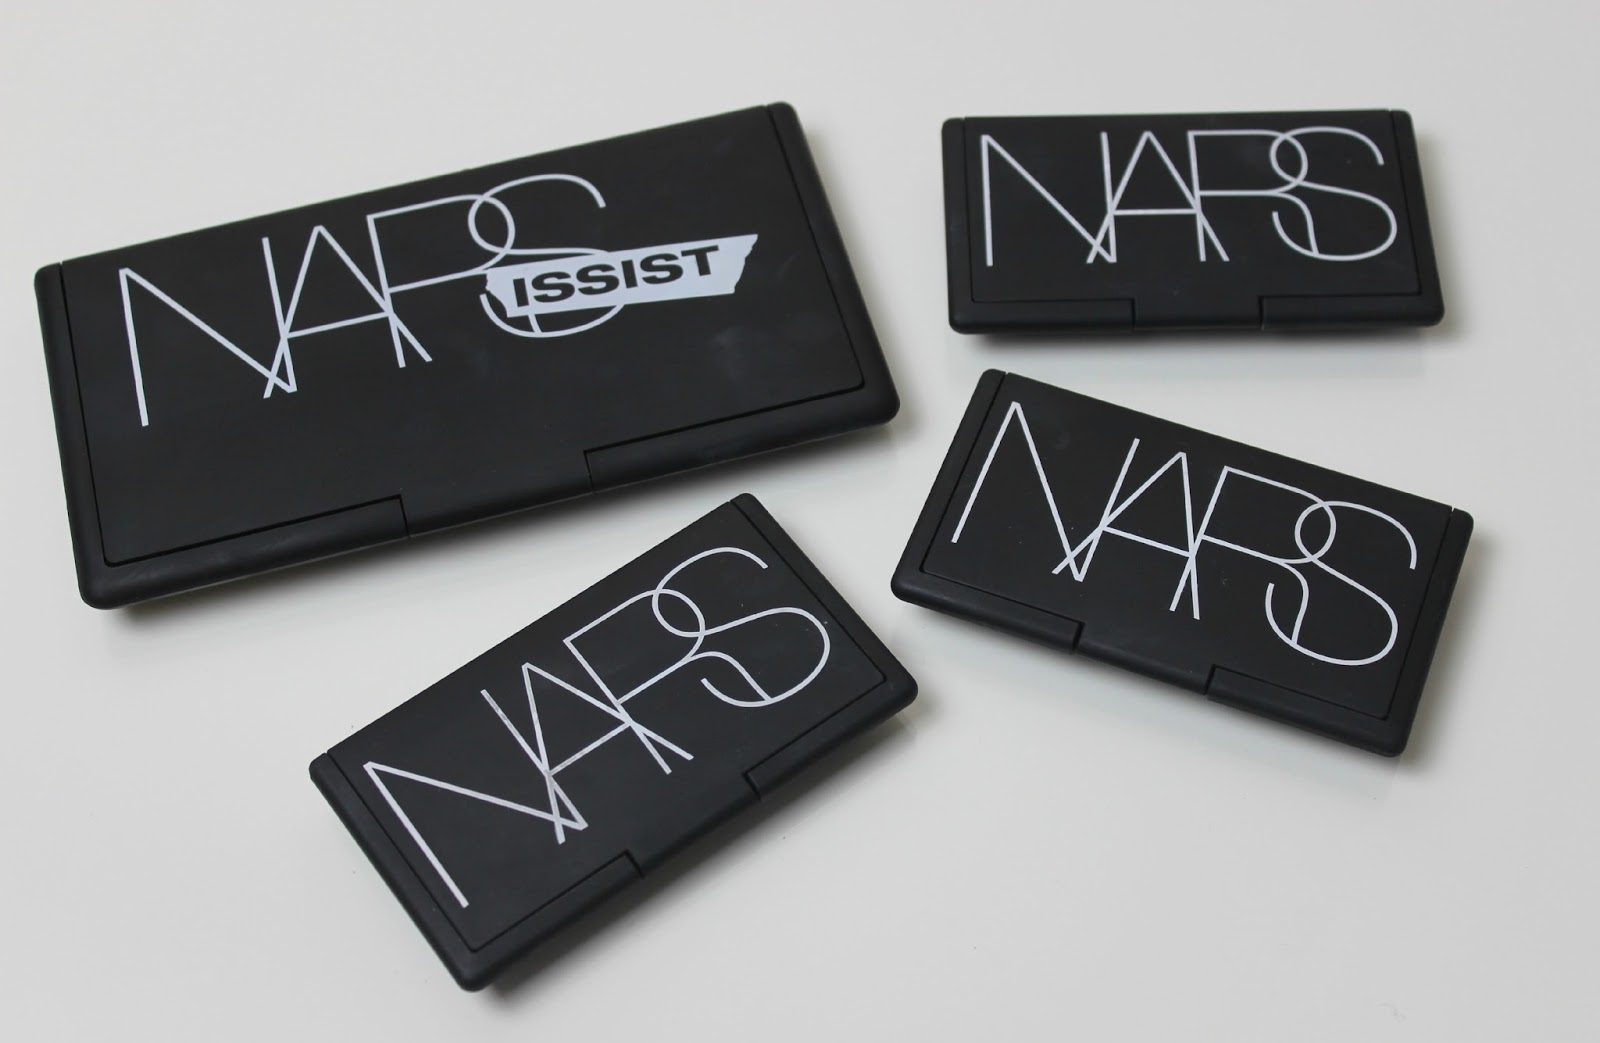 A picture of NARS eyeshadow palettes